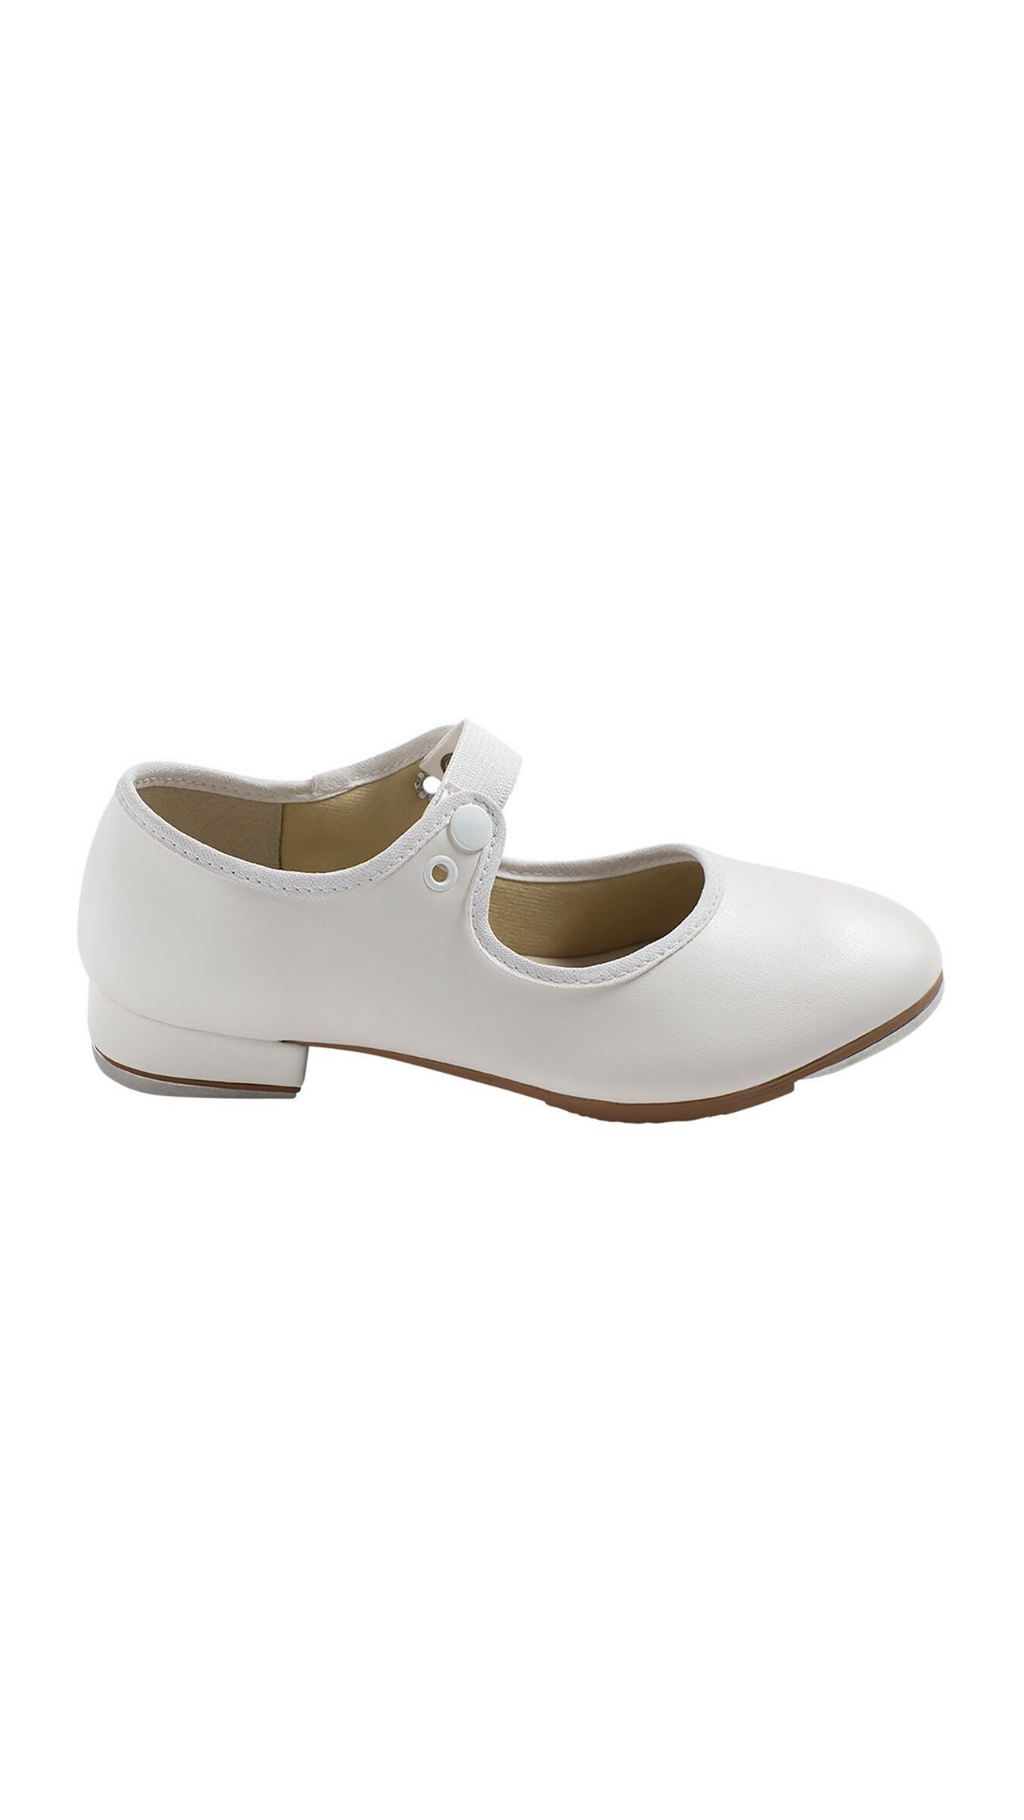 Val Tie and Snap Tap Shoe TA35-Child (White) | (ONLINE ONLY PRICING)